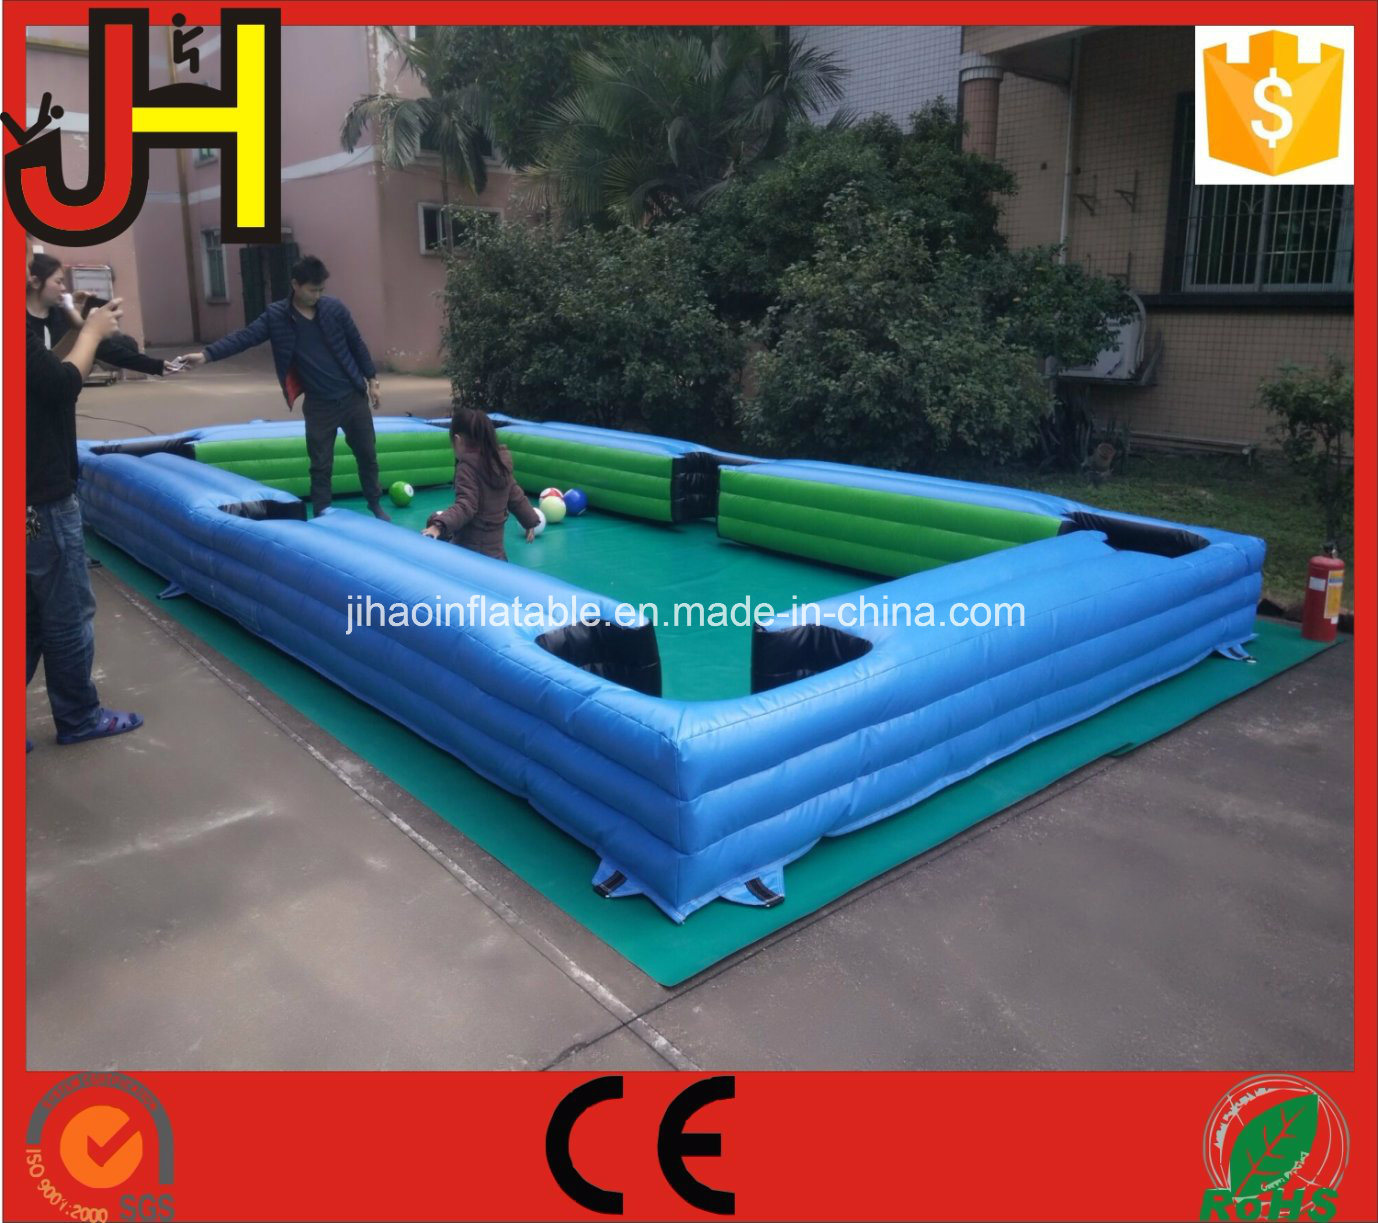 Inflatable Snooker Ball Game, Inflatable Foot Pool, Football Pool Table